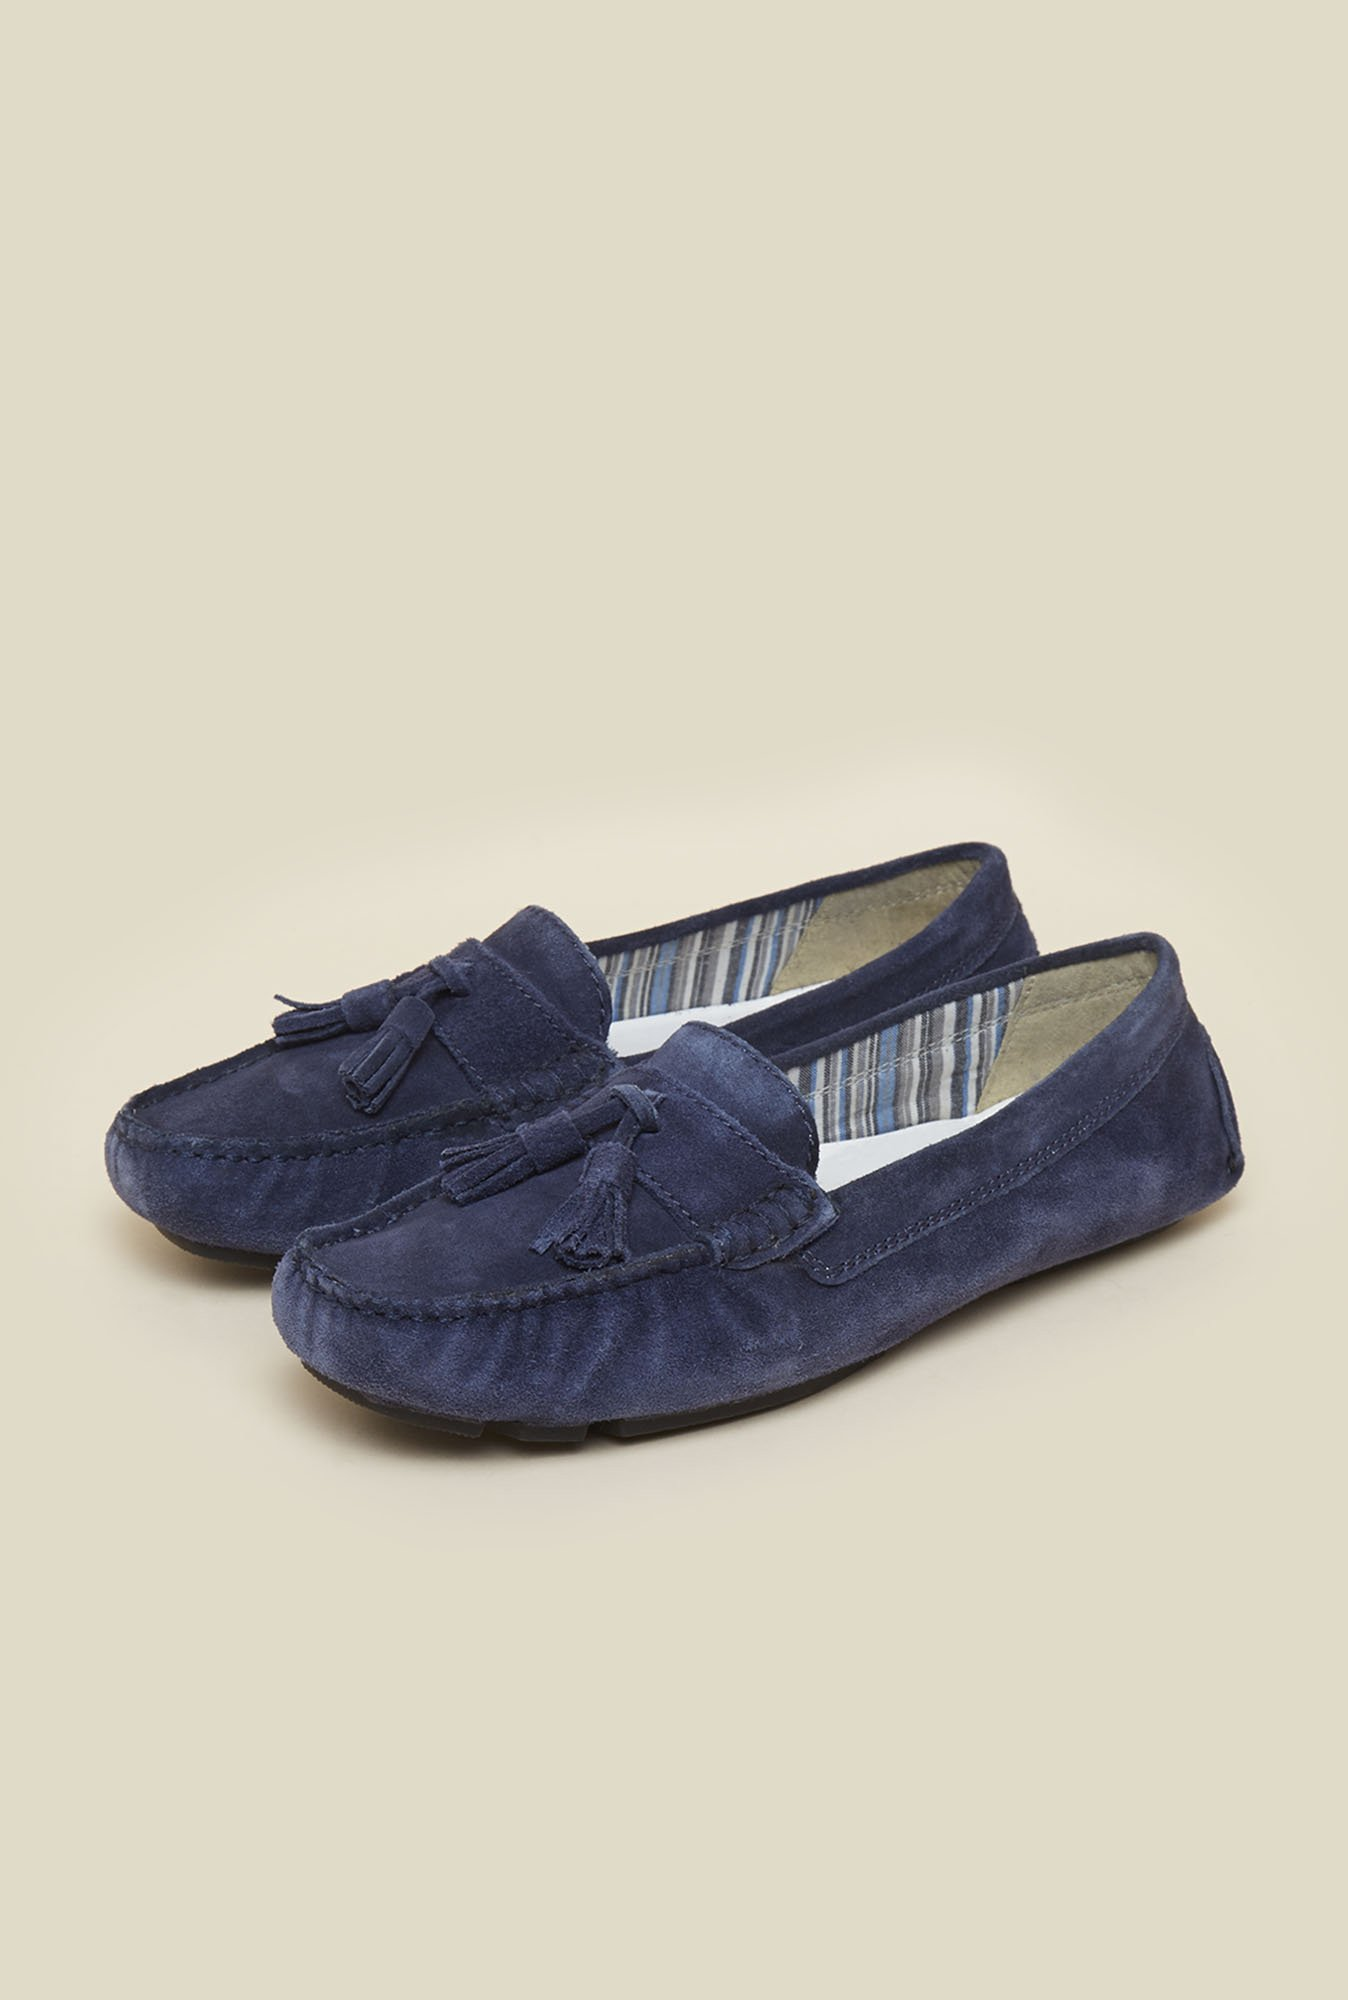 La Briza Navy Loafers